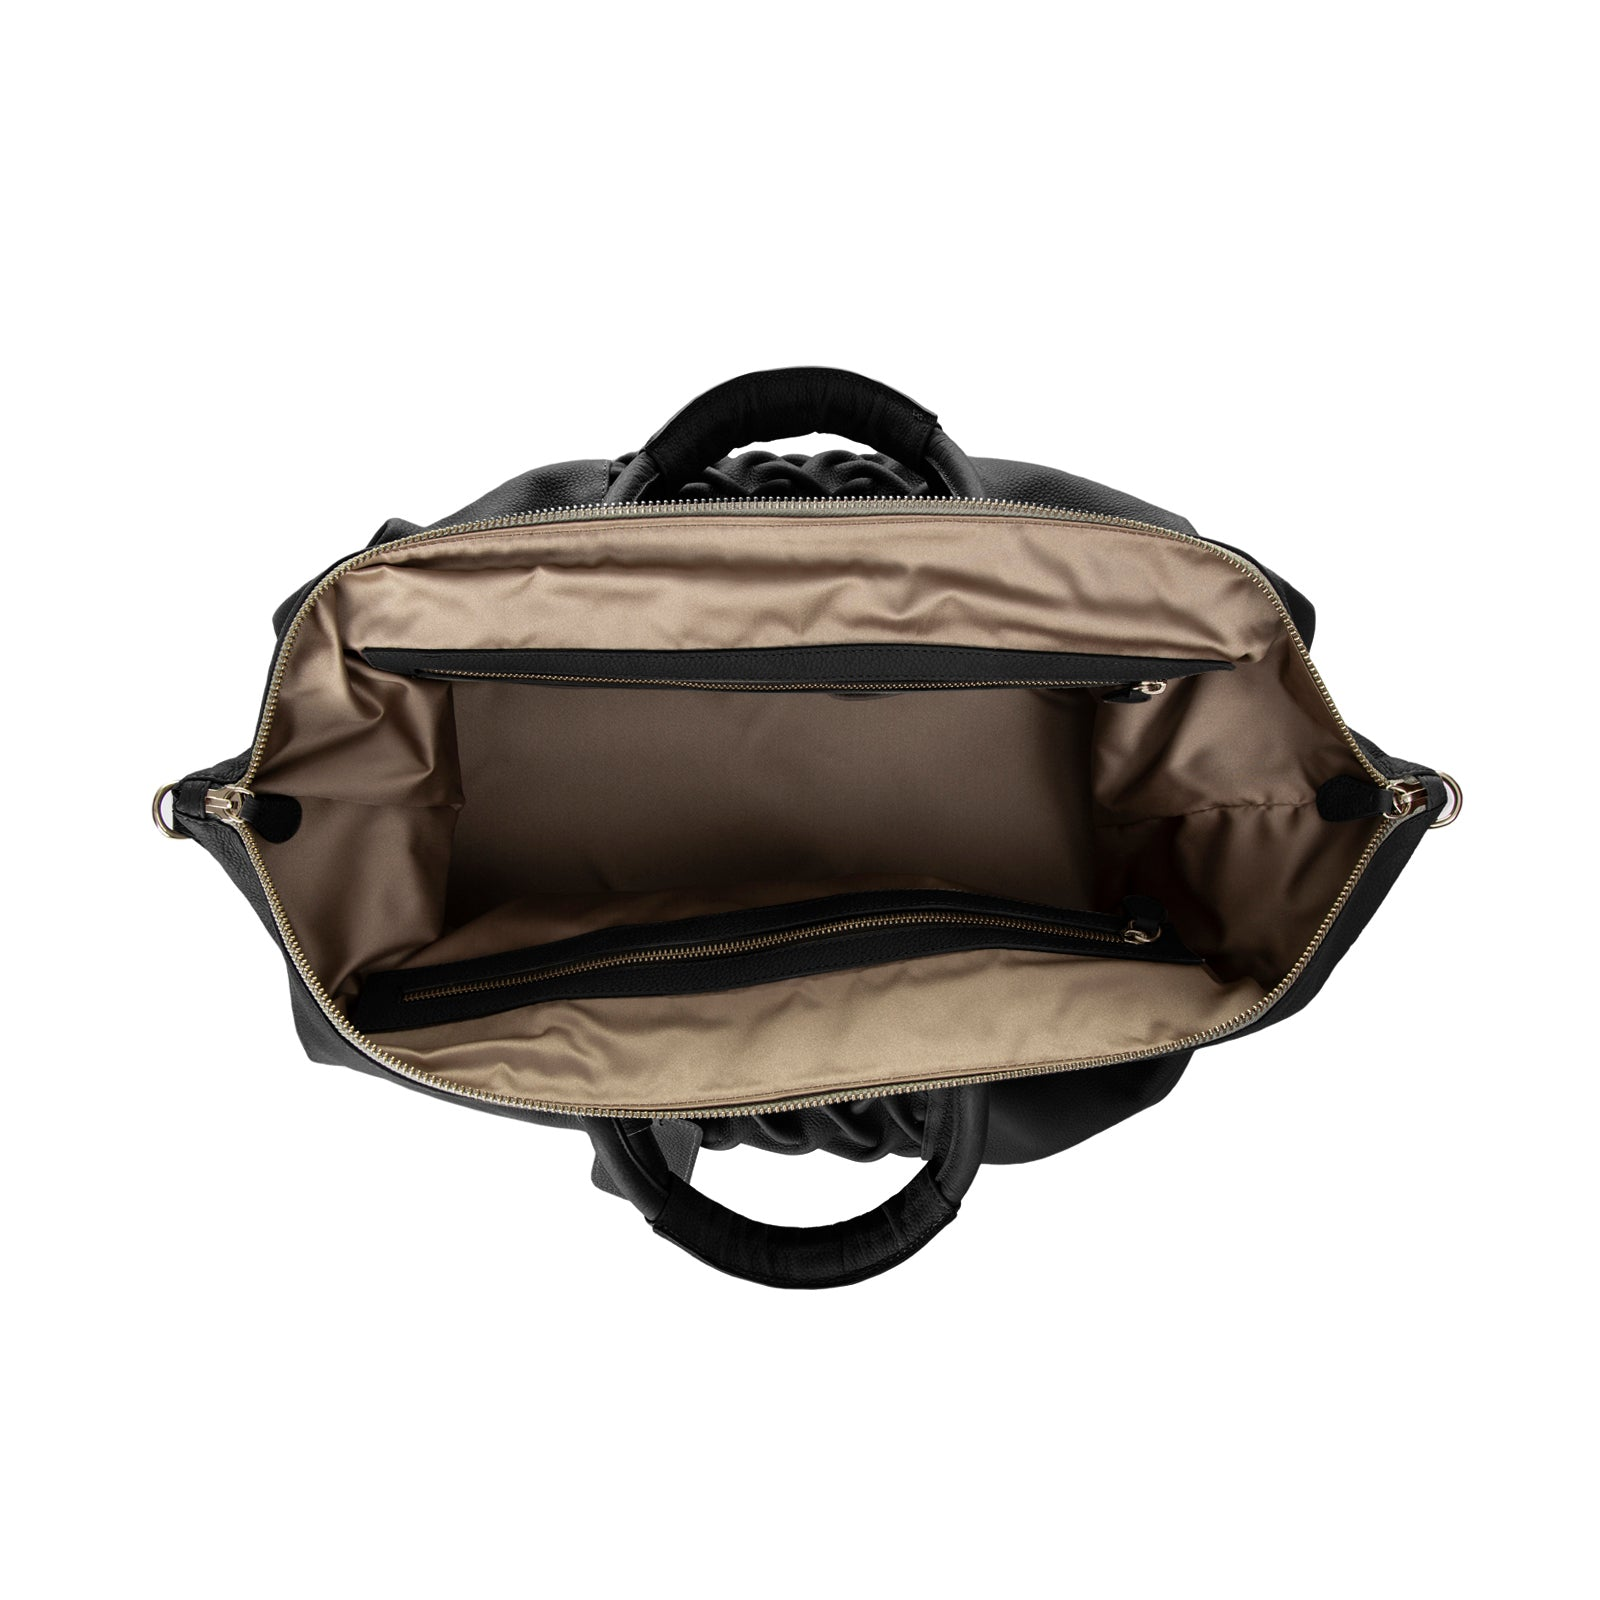 The Pleated Duffle Bag